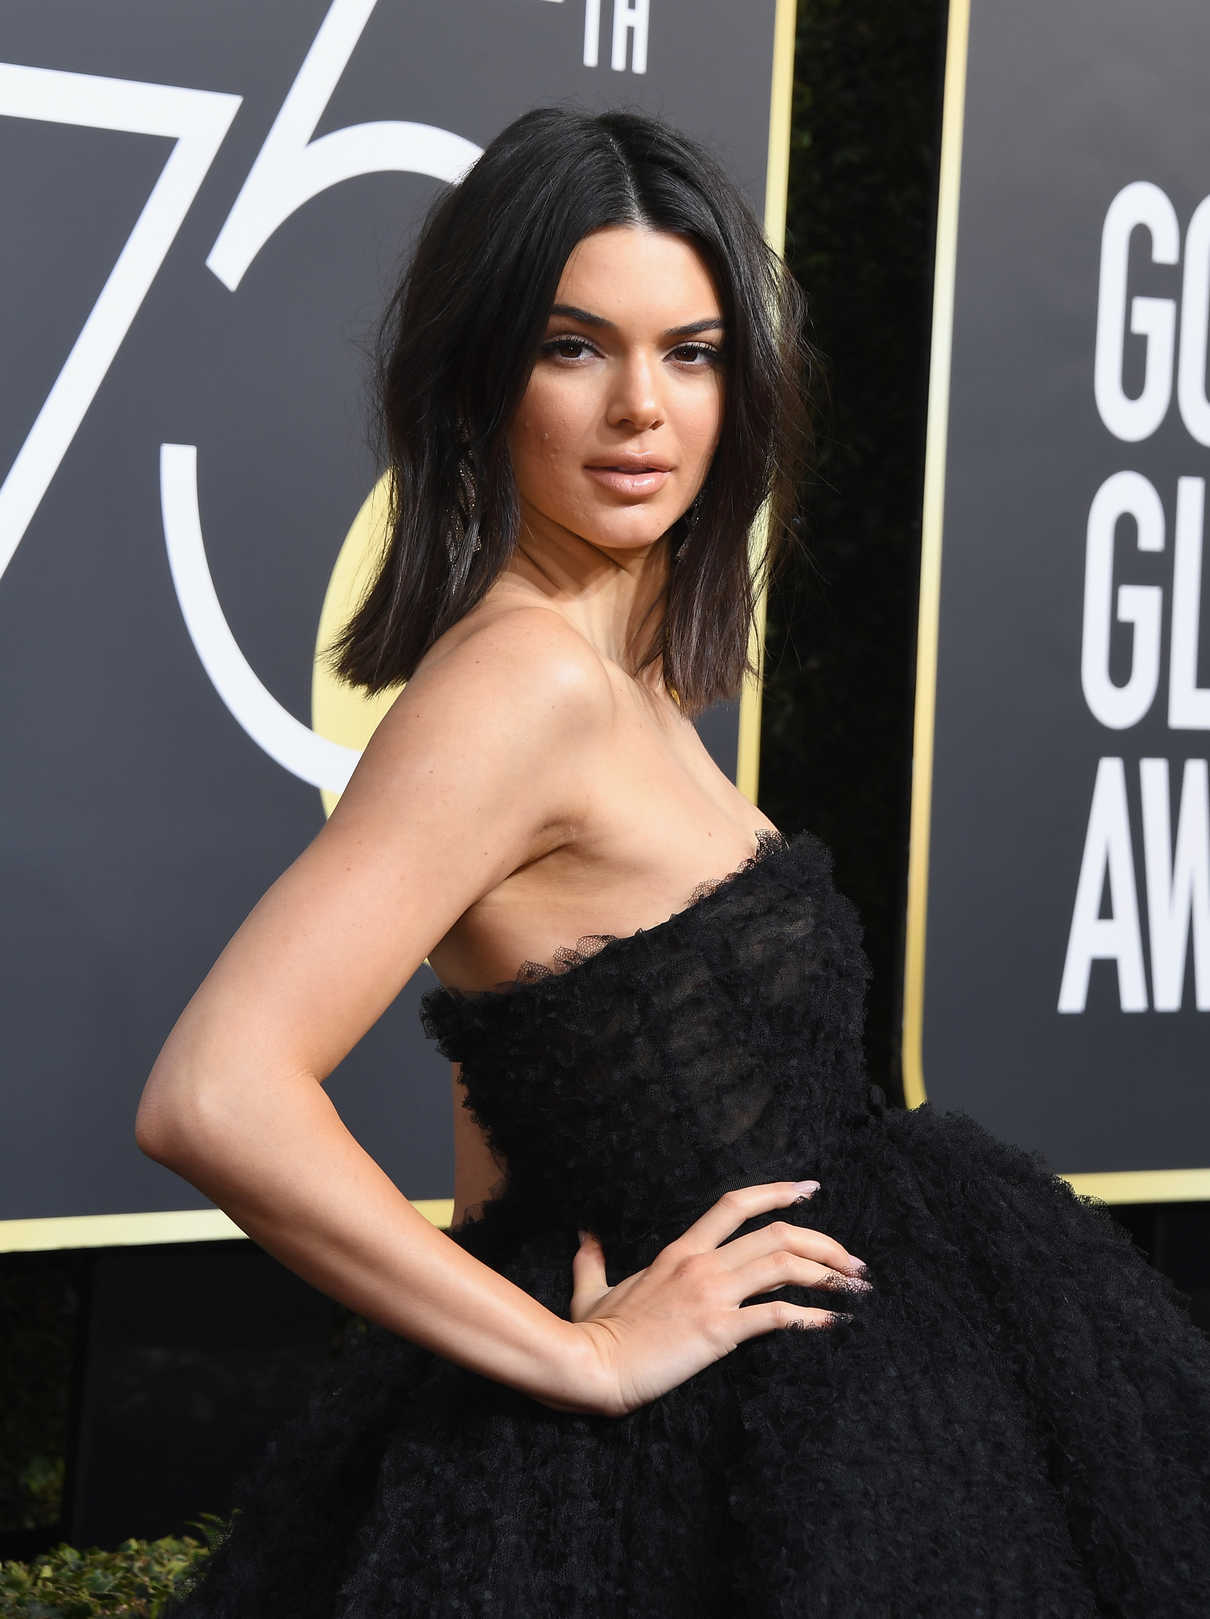 Kendall Jenner at the 75th Annual Golden Globe Awards in Beverly Hills 01/07/2018-4